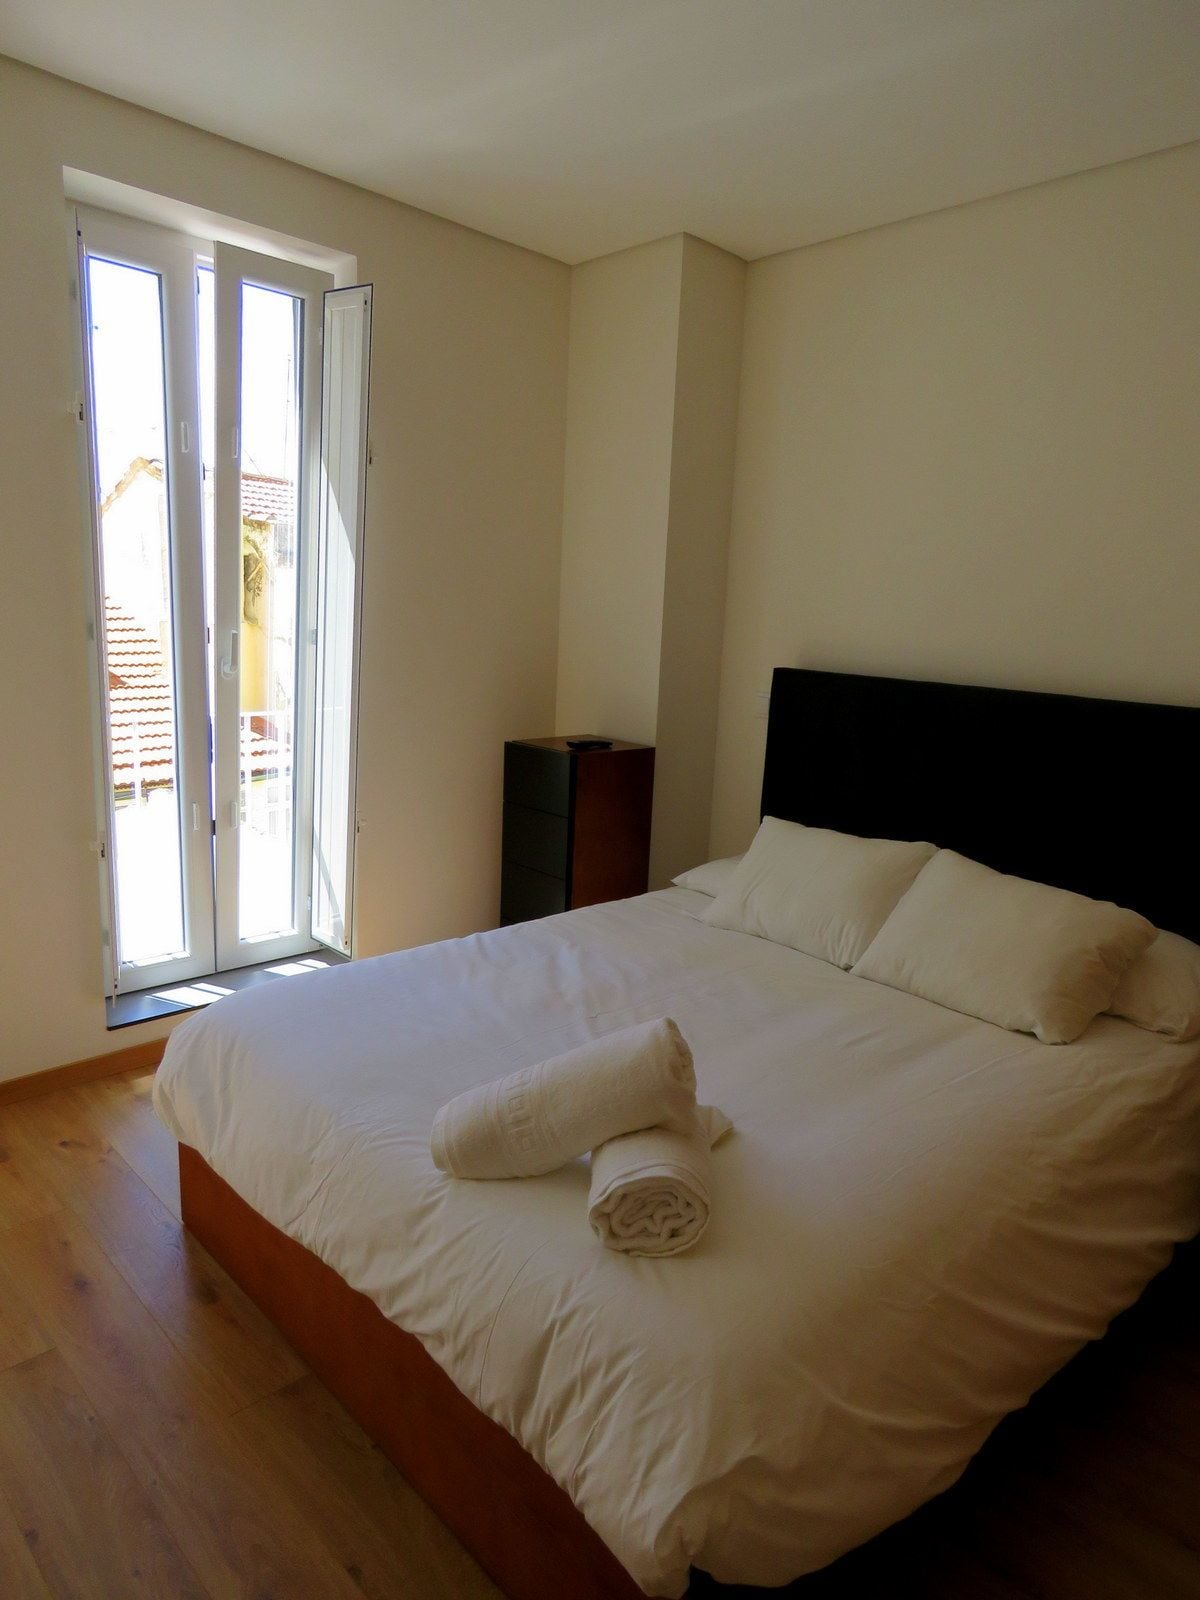 Downtown Boutique Studio & Suites, Lisboa